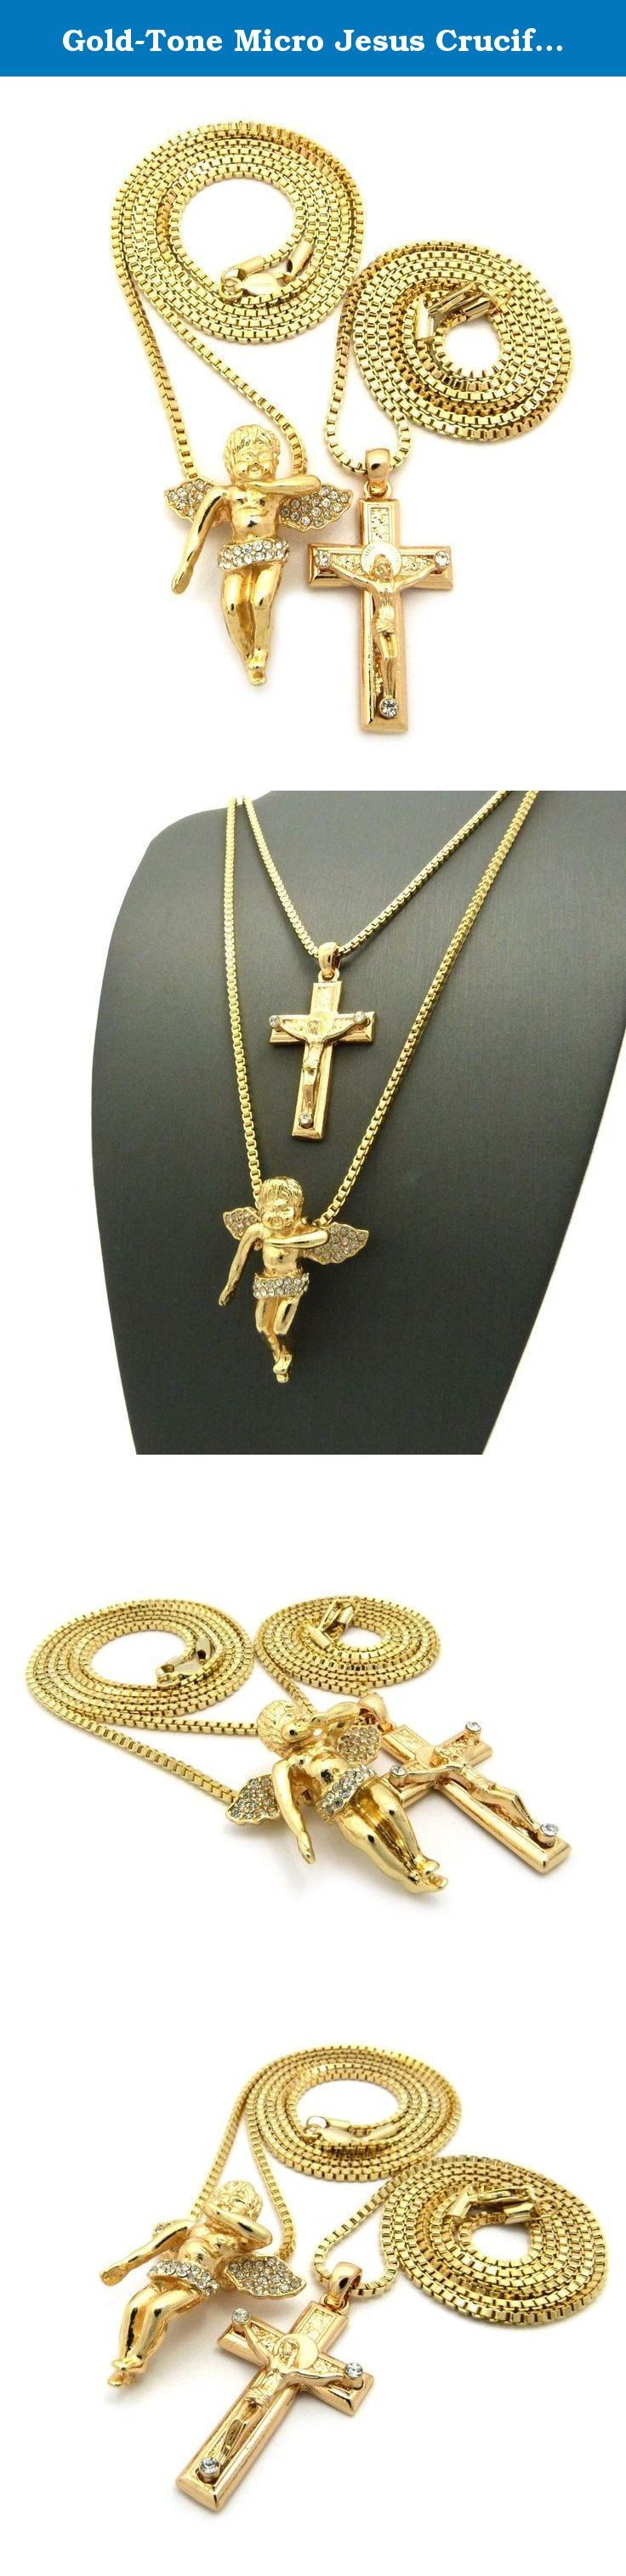 """Gold-Tone Micro Jesus Crucified Cross, Angel Wing Pendant 24"""",30"""" Box Chain 2 Necklace Set RC1041G. Gold-Tone Micro Jesus Crucified Cross, Angel Wing Pendant 24"""",30"""" Box Chain 2 Necklace Set."""